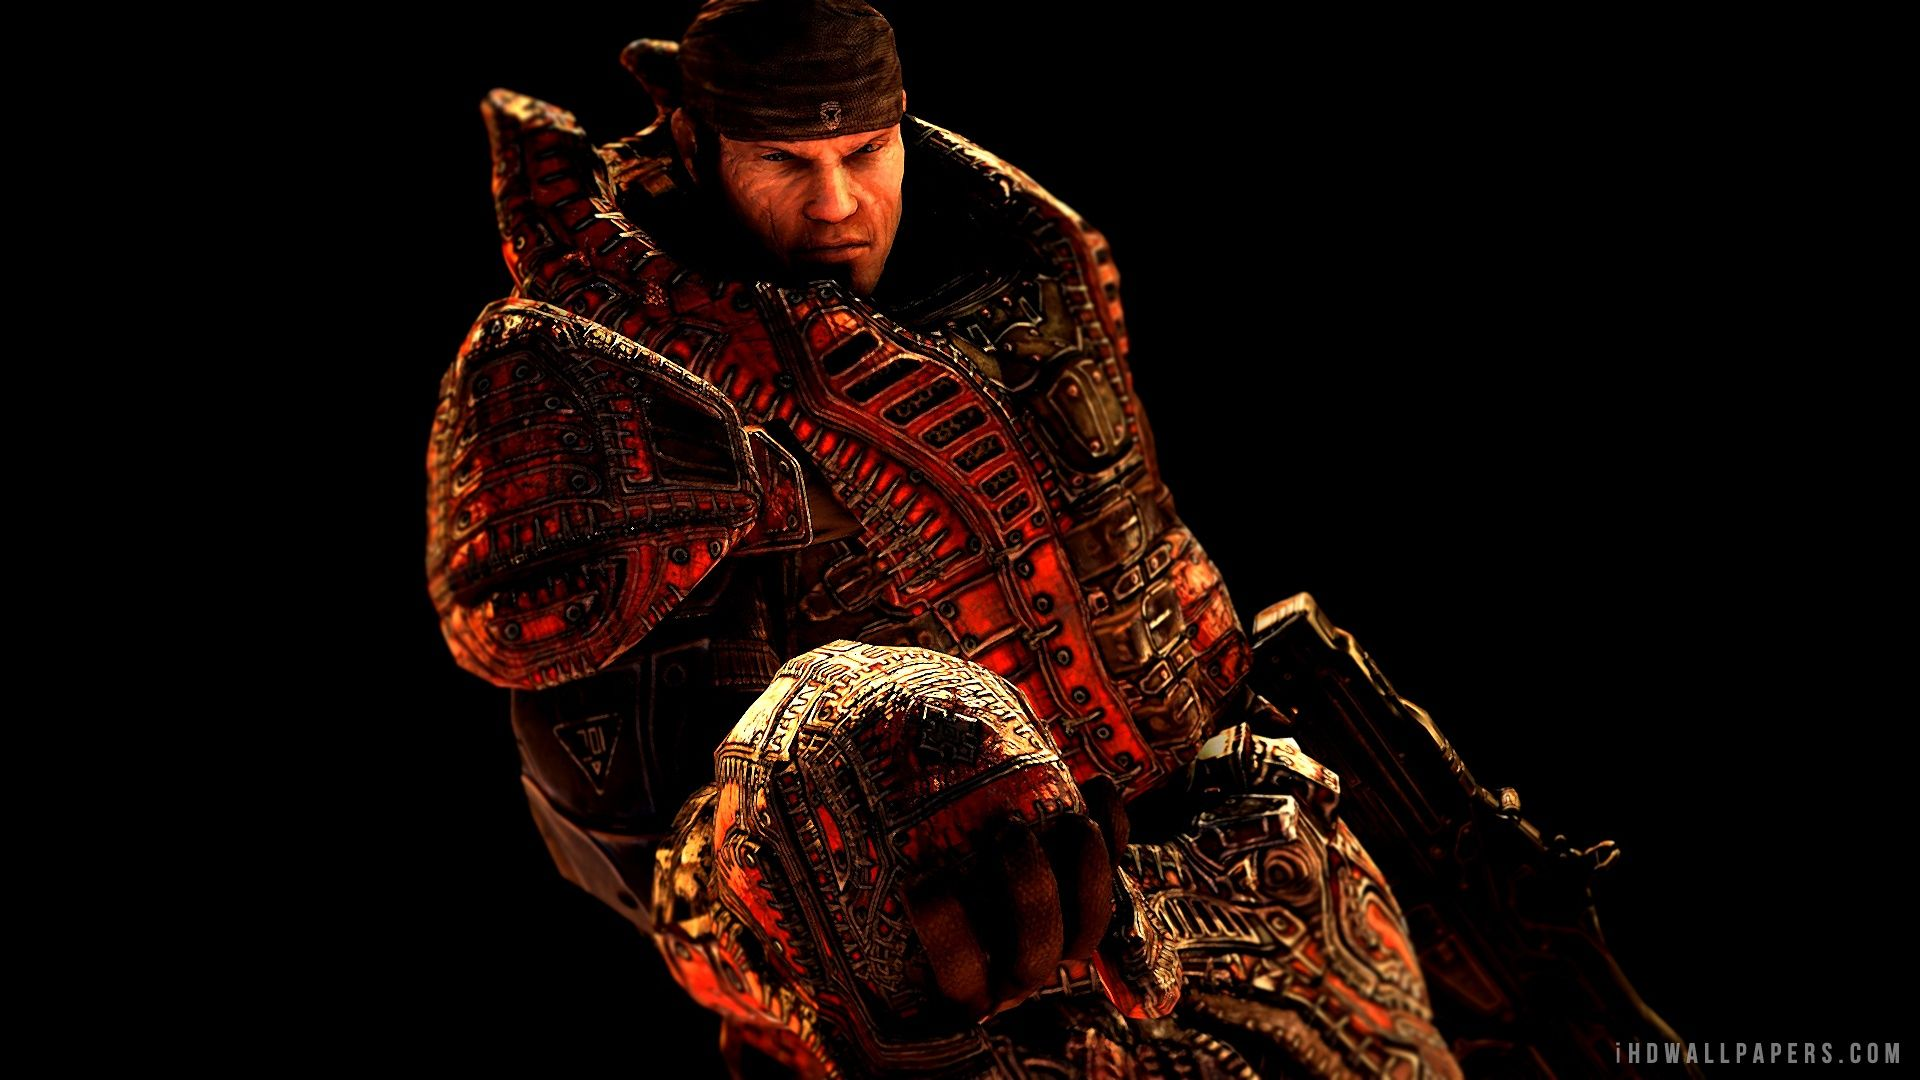 Group Of Gears Of War Wallpaper 1080p Phone